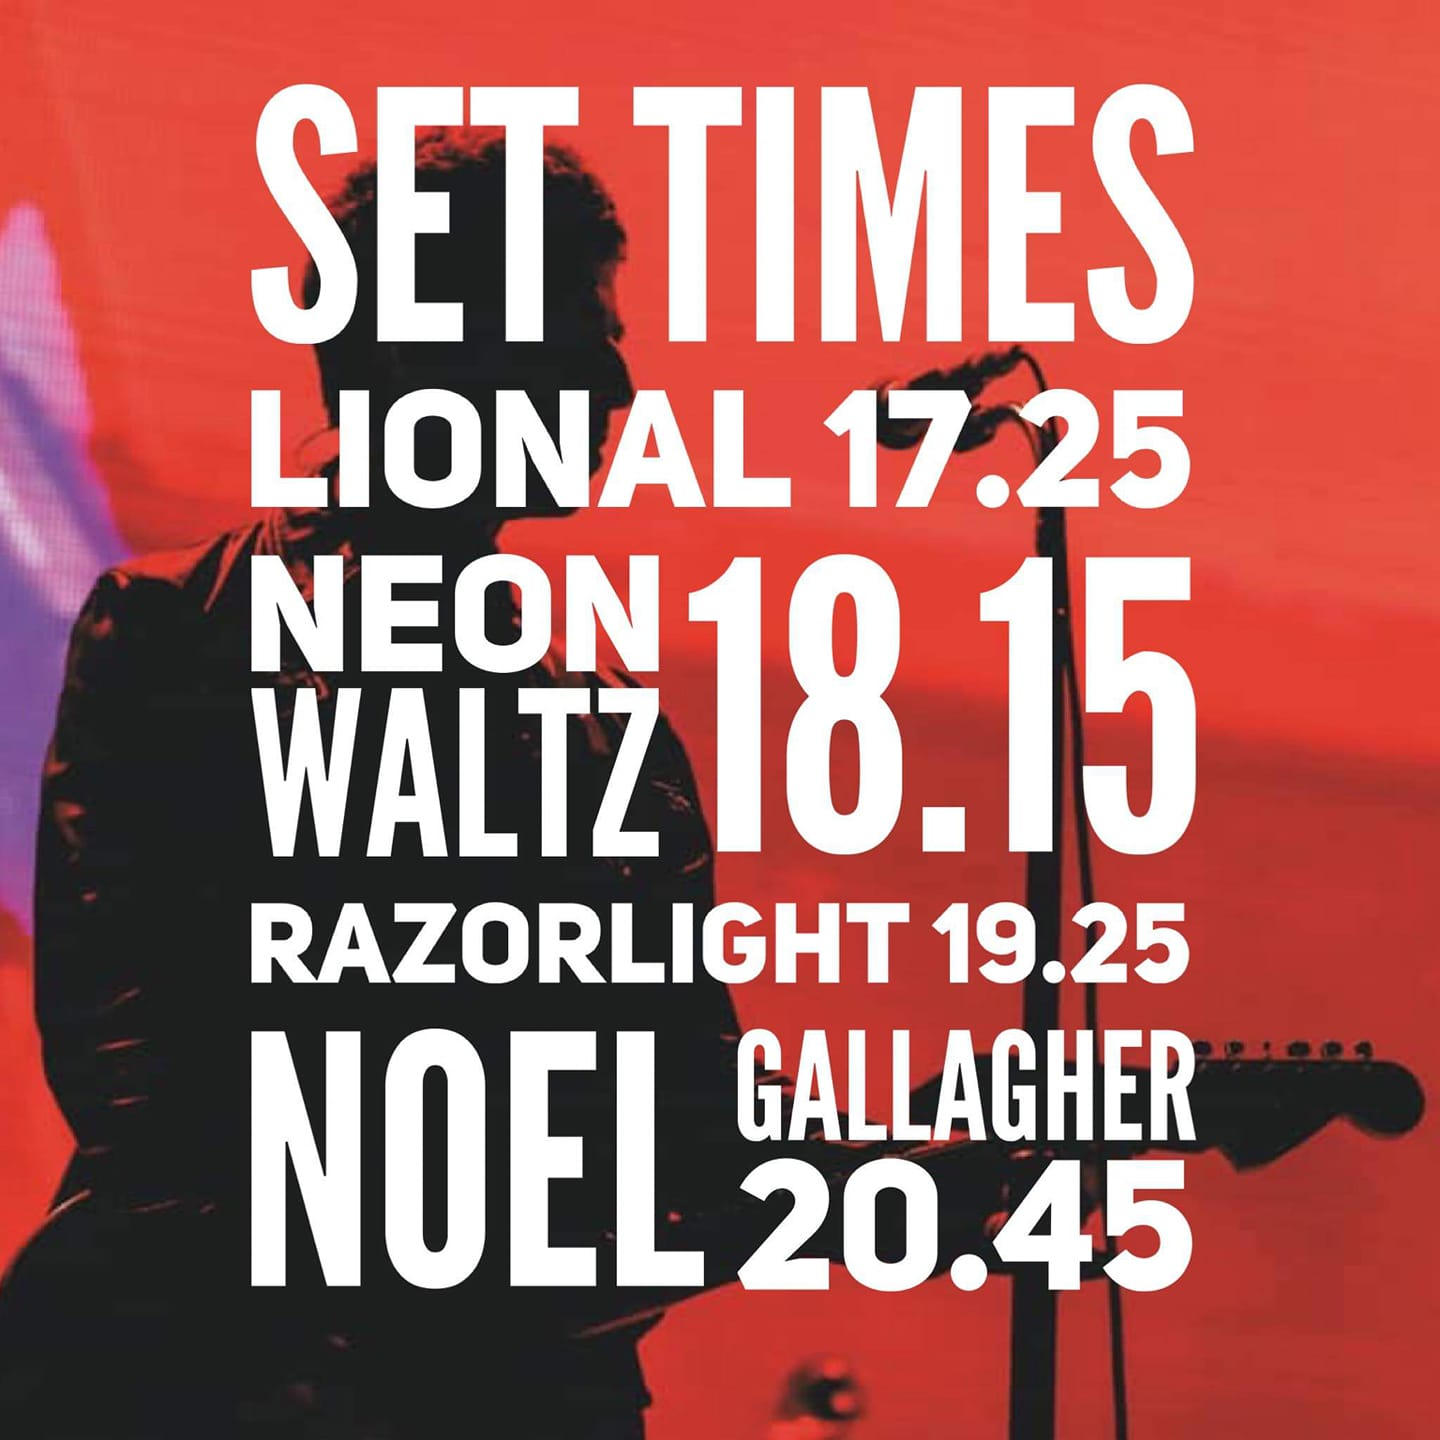 Set Times Noel Gallagher Inverness - Noel Gallagher's High Flying Birds in Inverness - Info